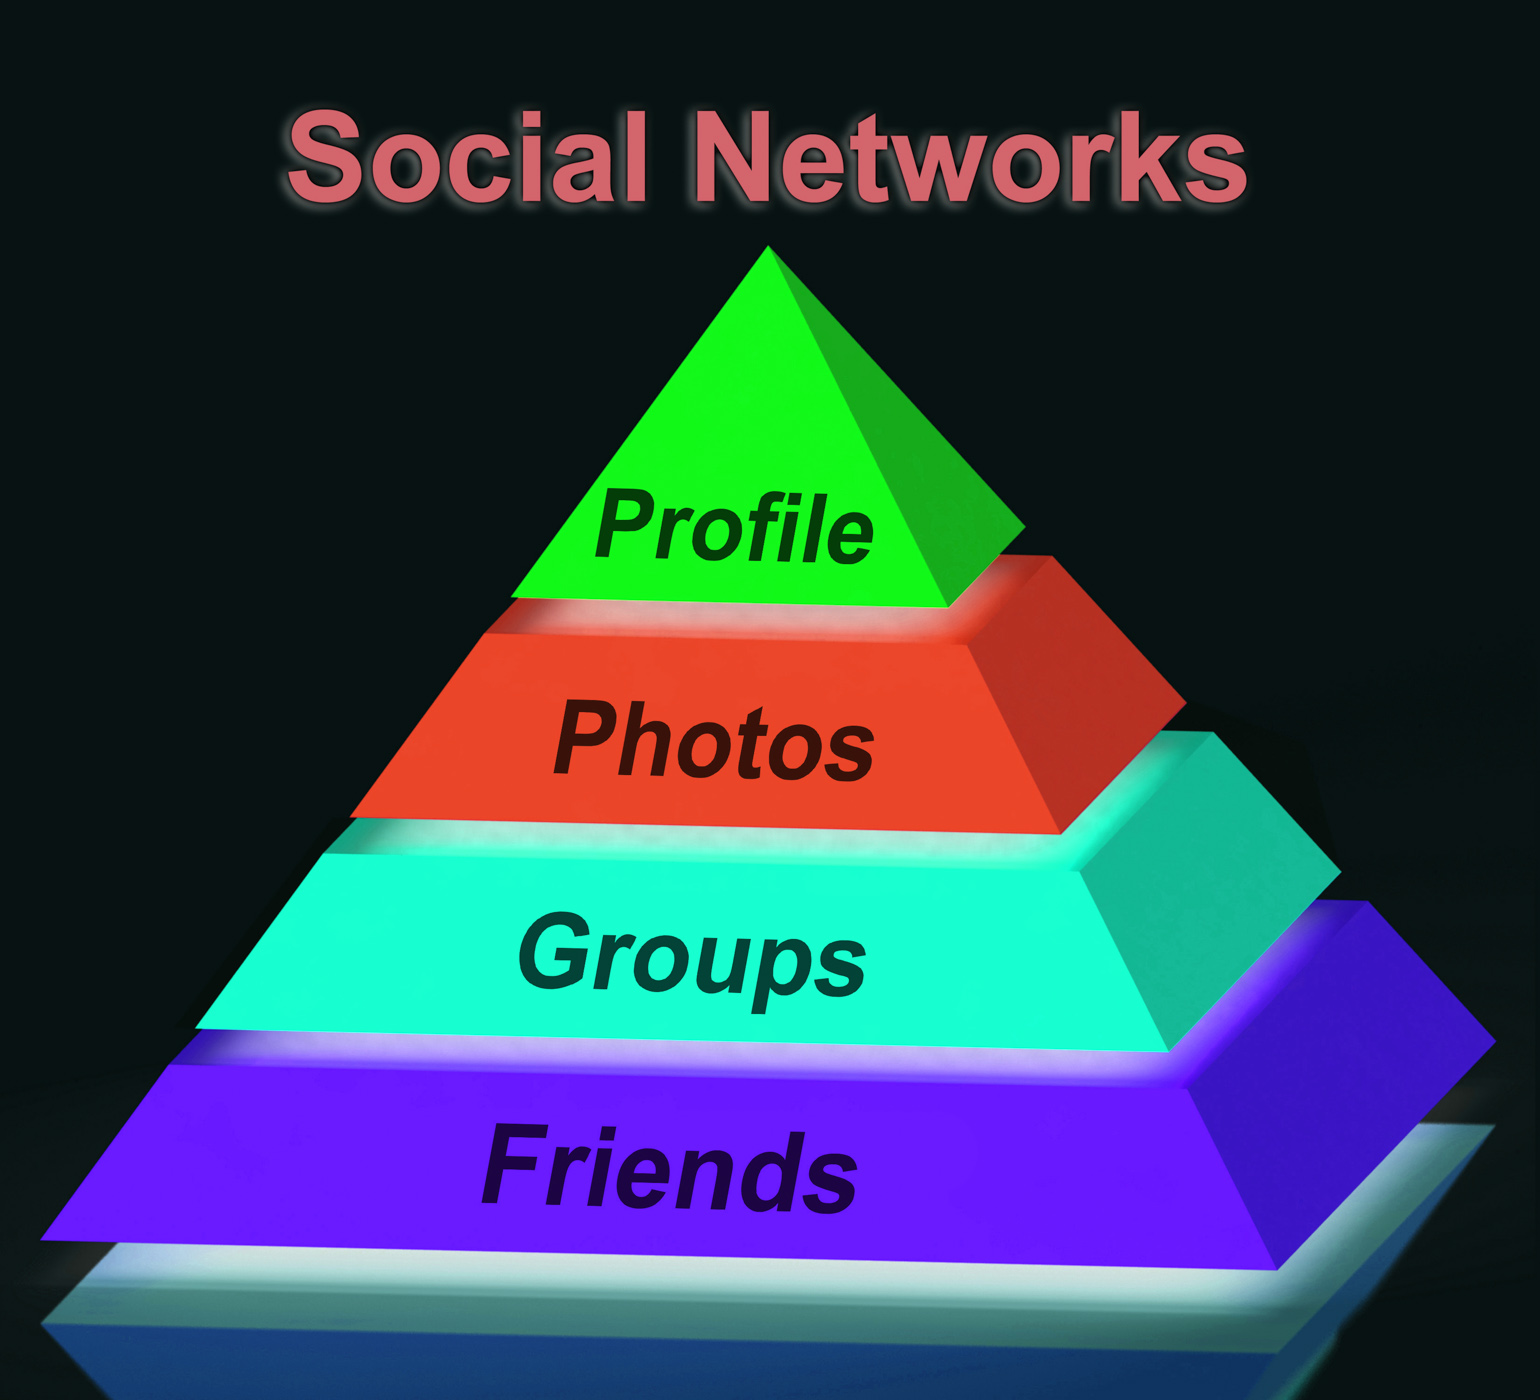 Social networks pyramid sign means profile friends following and shari photo